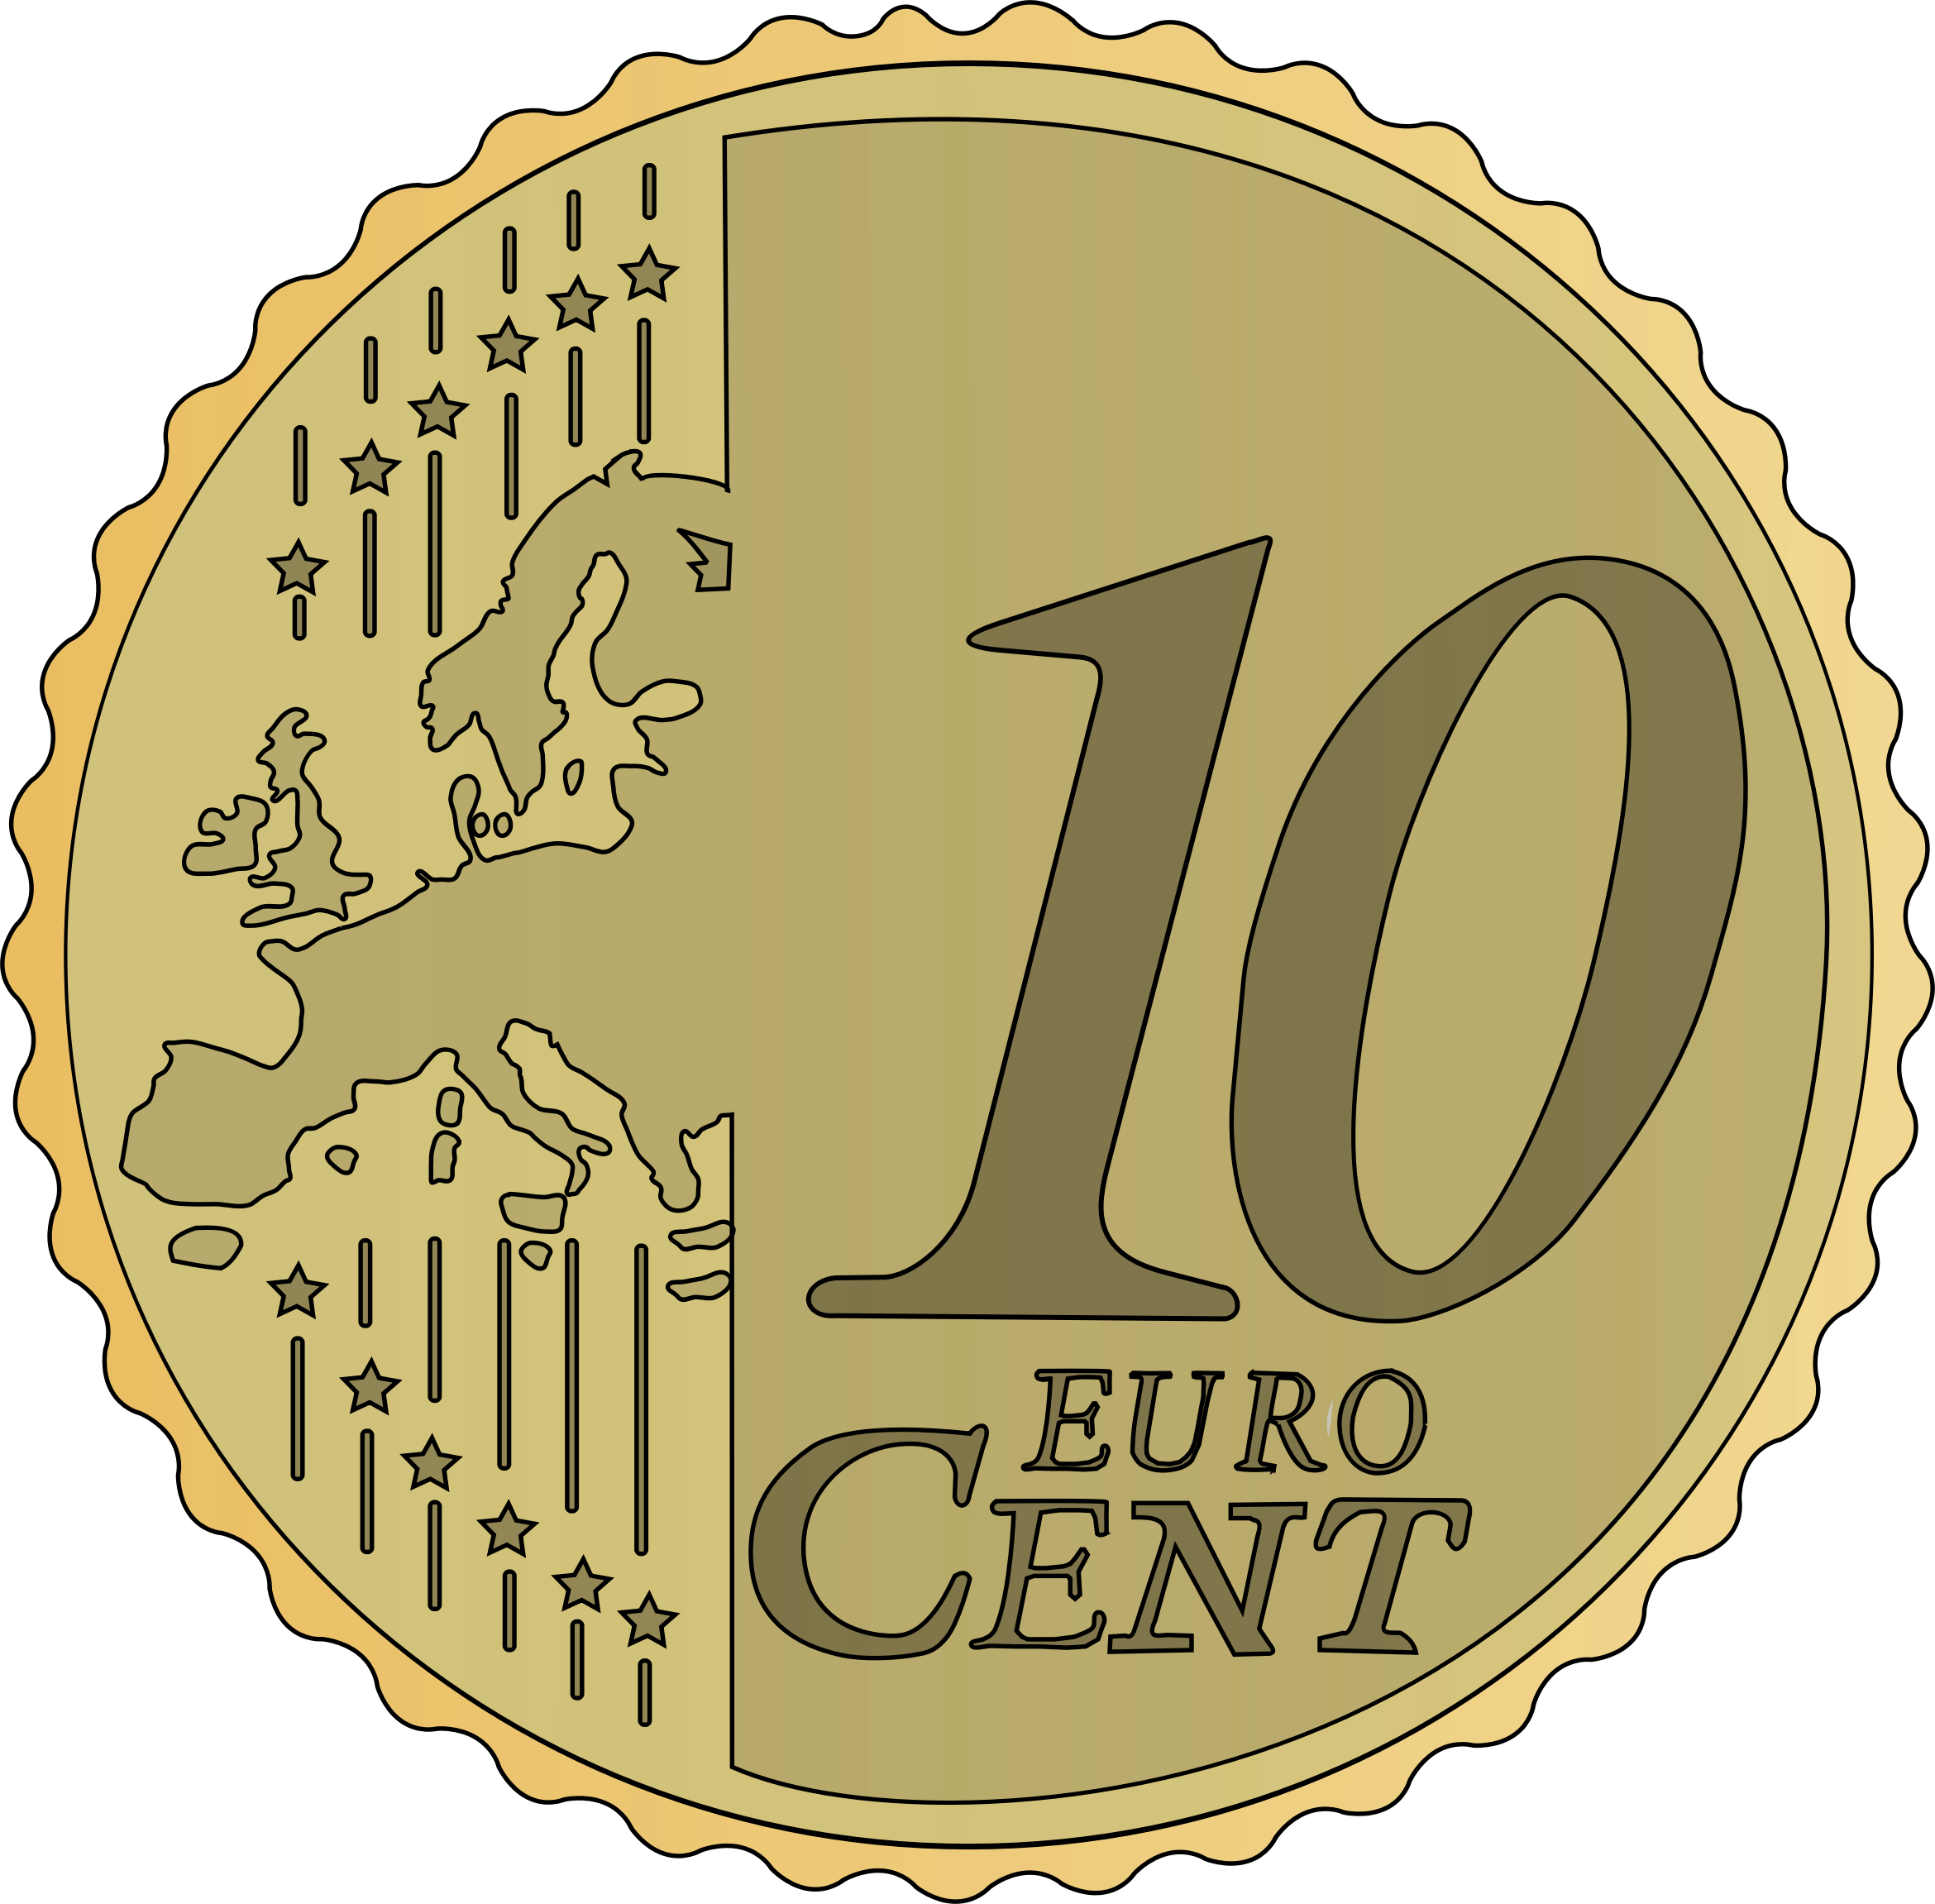 10 euro cent by frankes